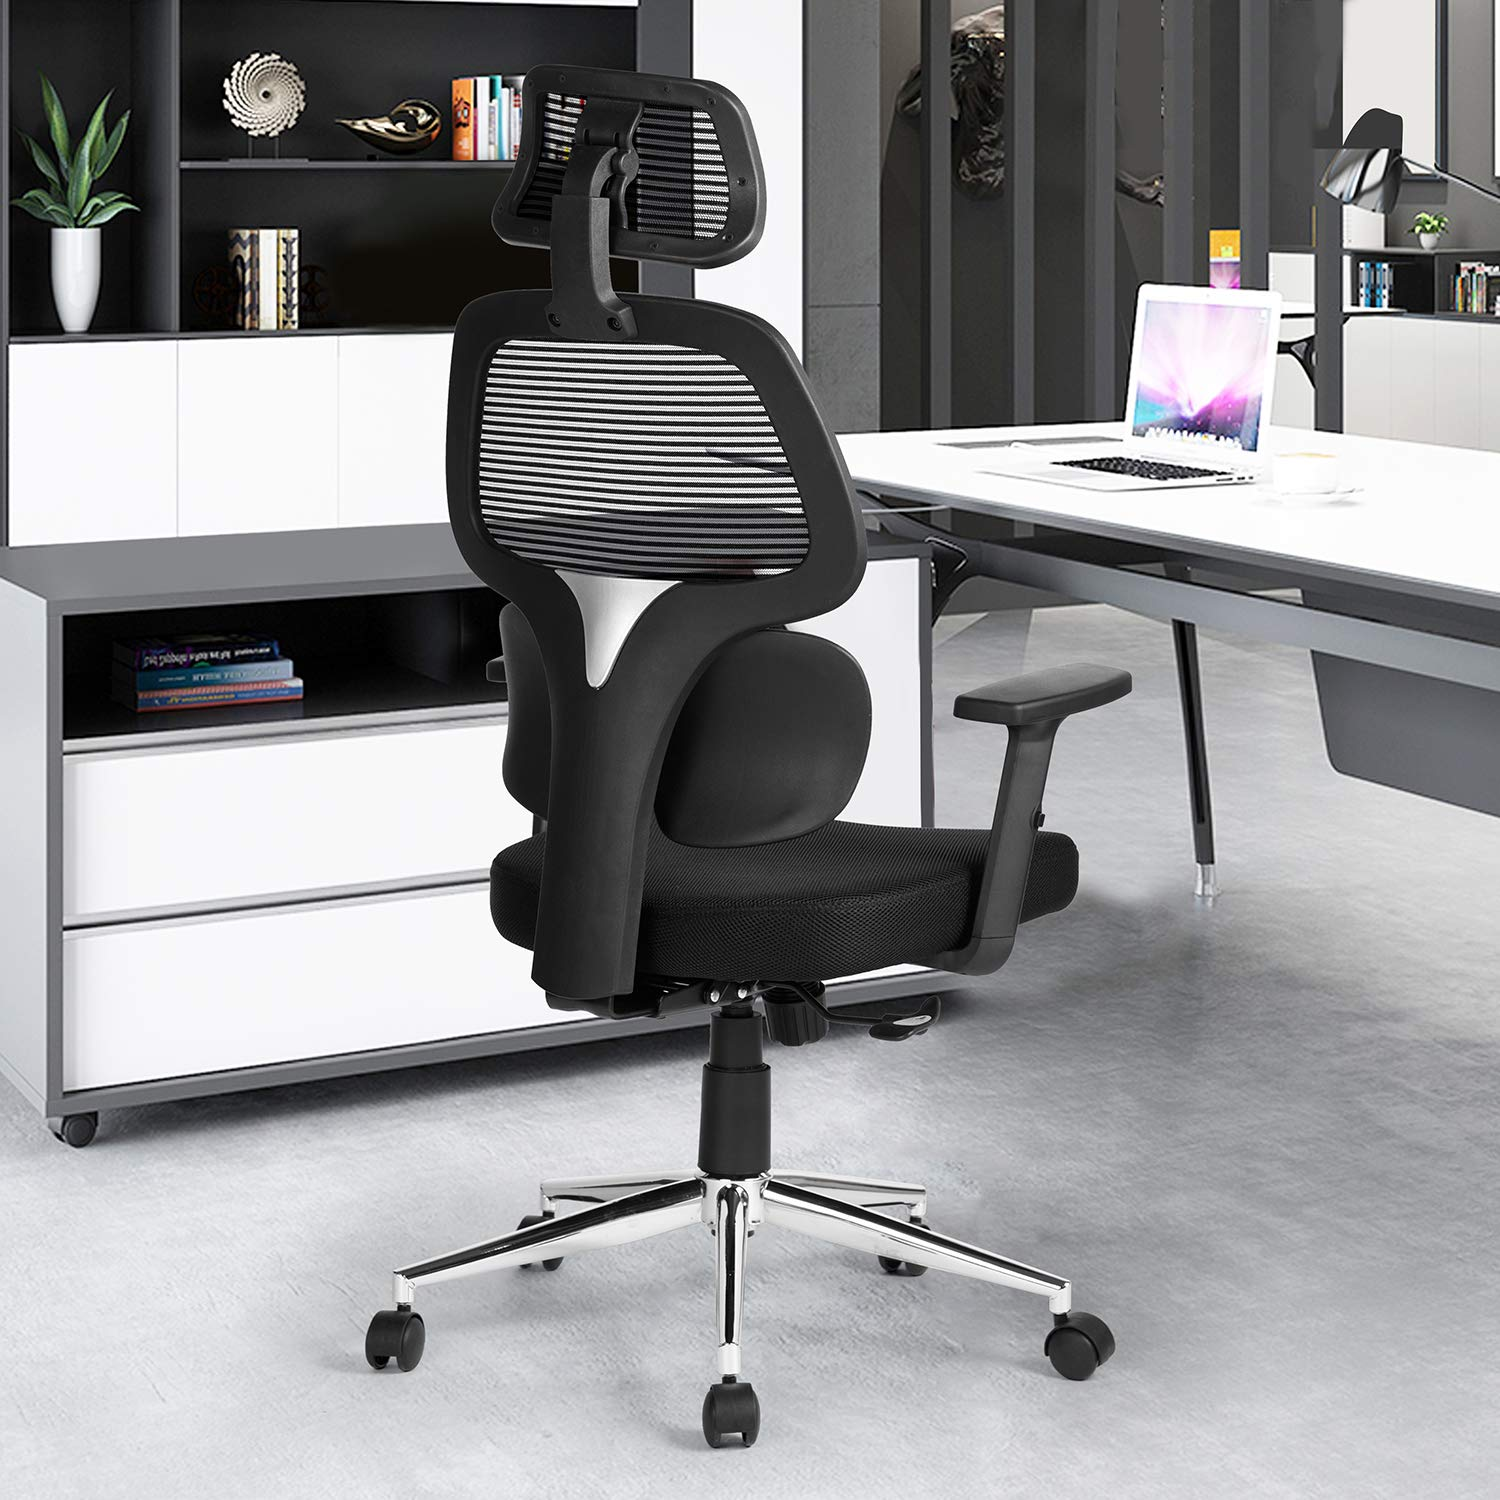 Update Ergonomic Office Chair Mesh Computer Desk Chair with Lumbar Support Adjustable Backrest Headrest Armrest High Back Swivel Task Executive Chairs for Home Office Conference Black /…